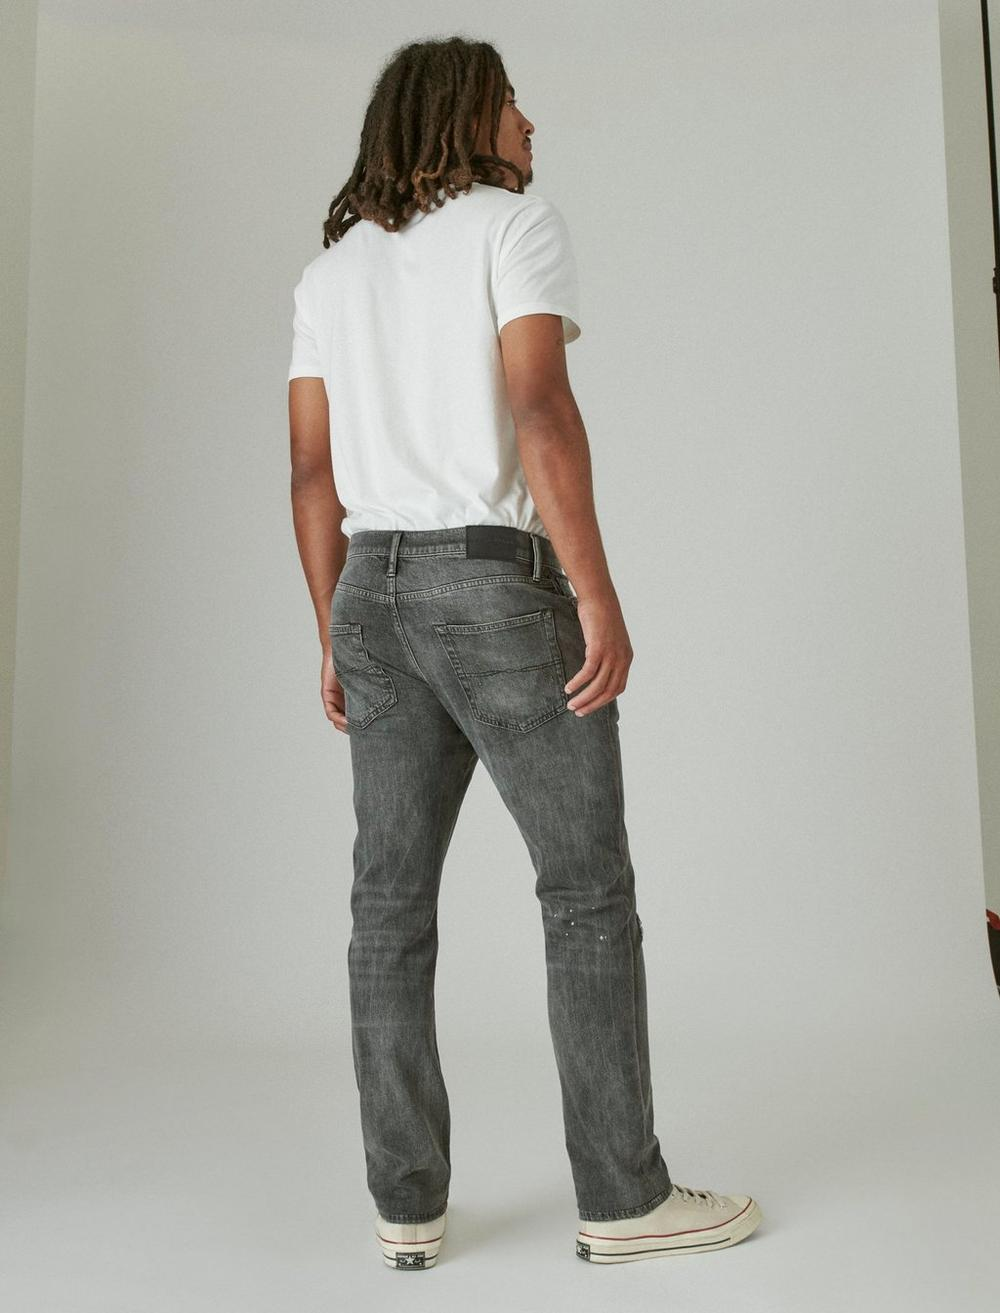 410 ATHLETIC STRAIGHT JEAN, image 3